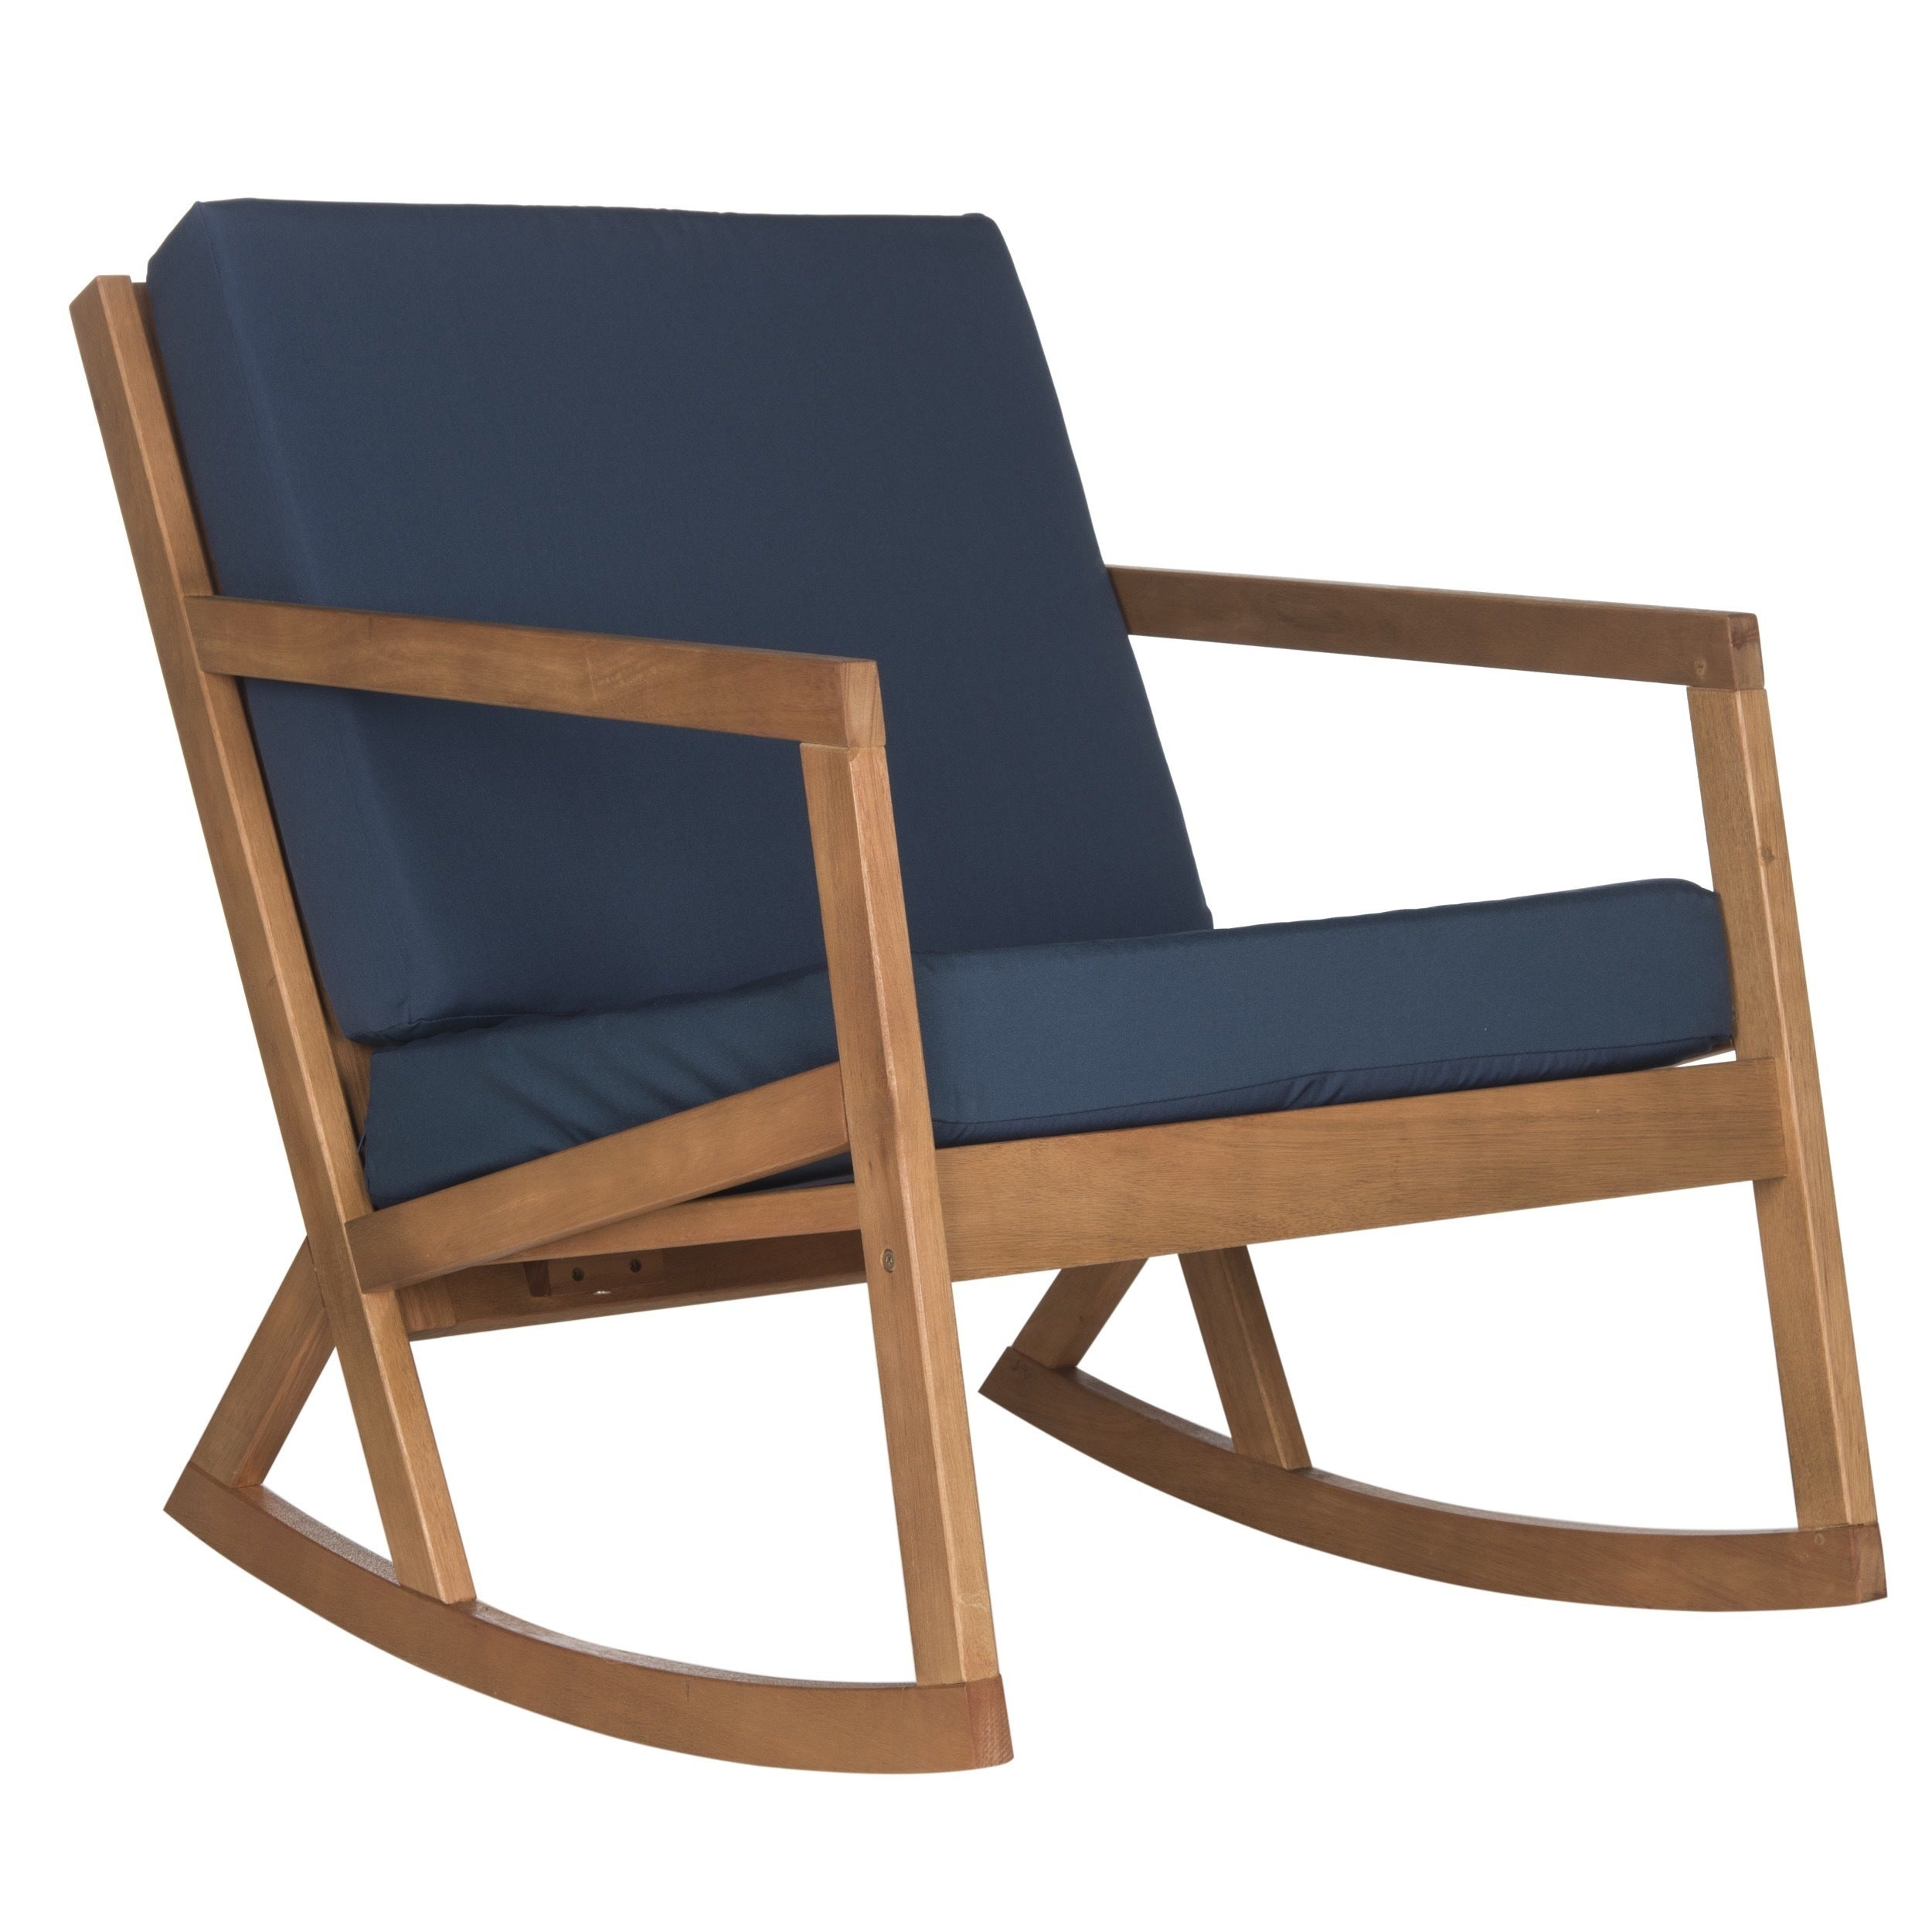 High Quality Shop Safavieh Outdoor Living Vernon Brown/ Navy Rocking Chair   On Sale    Free Shipping Today   Overstock.com   11002116